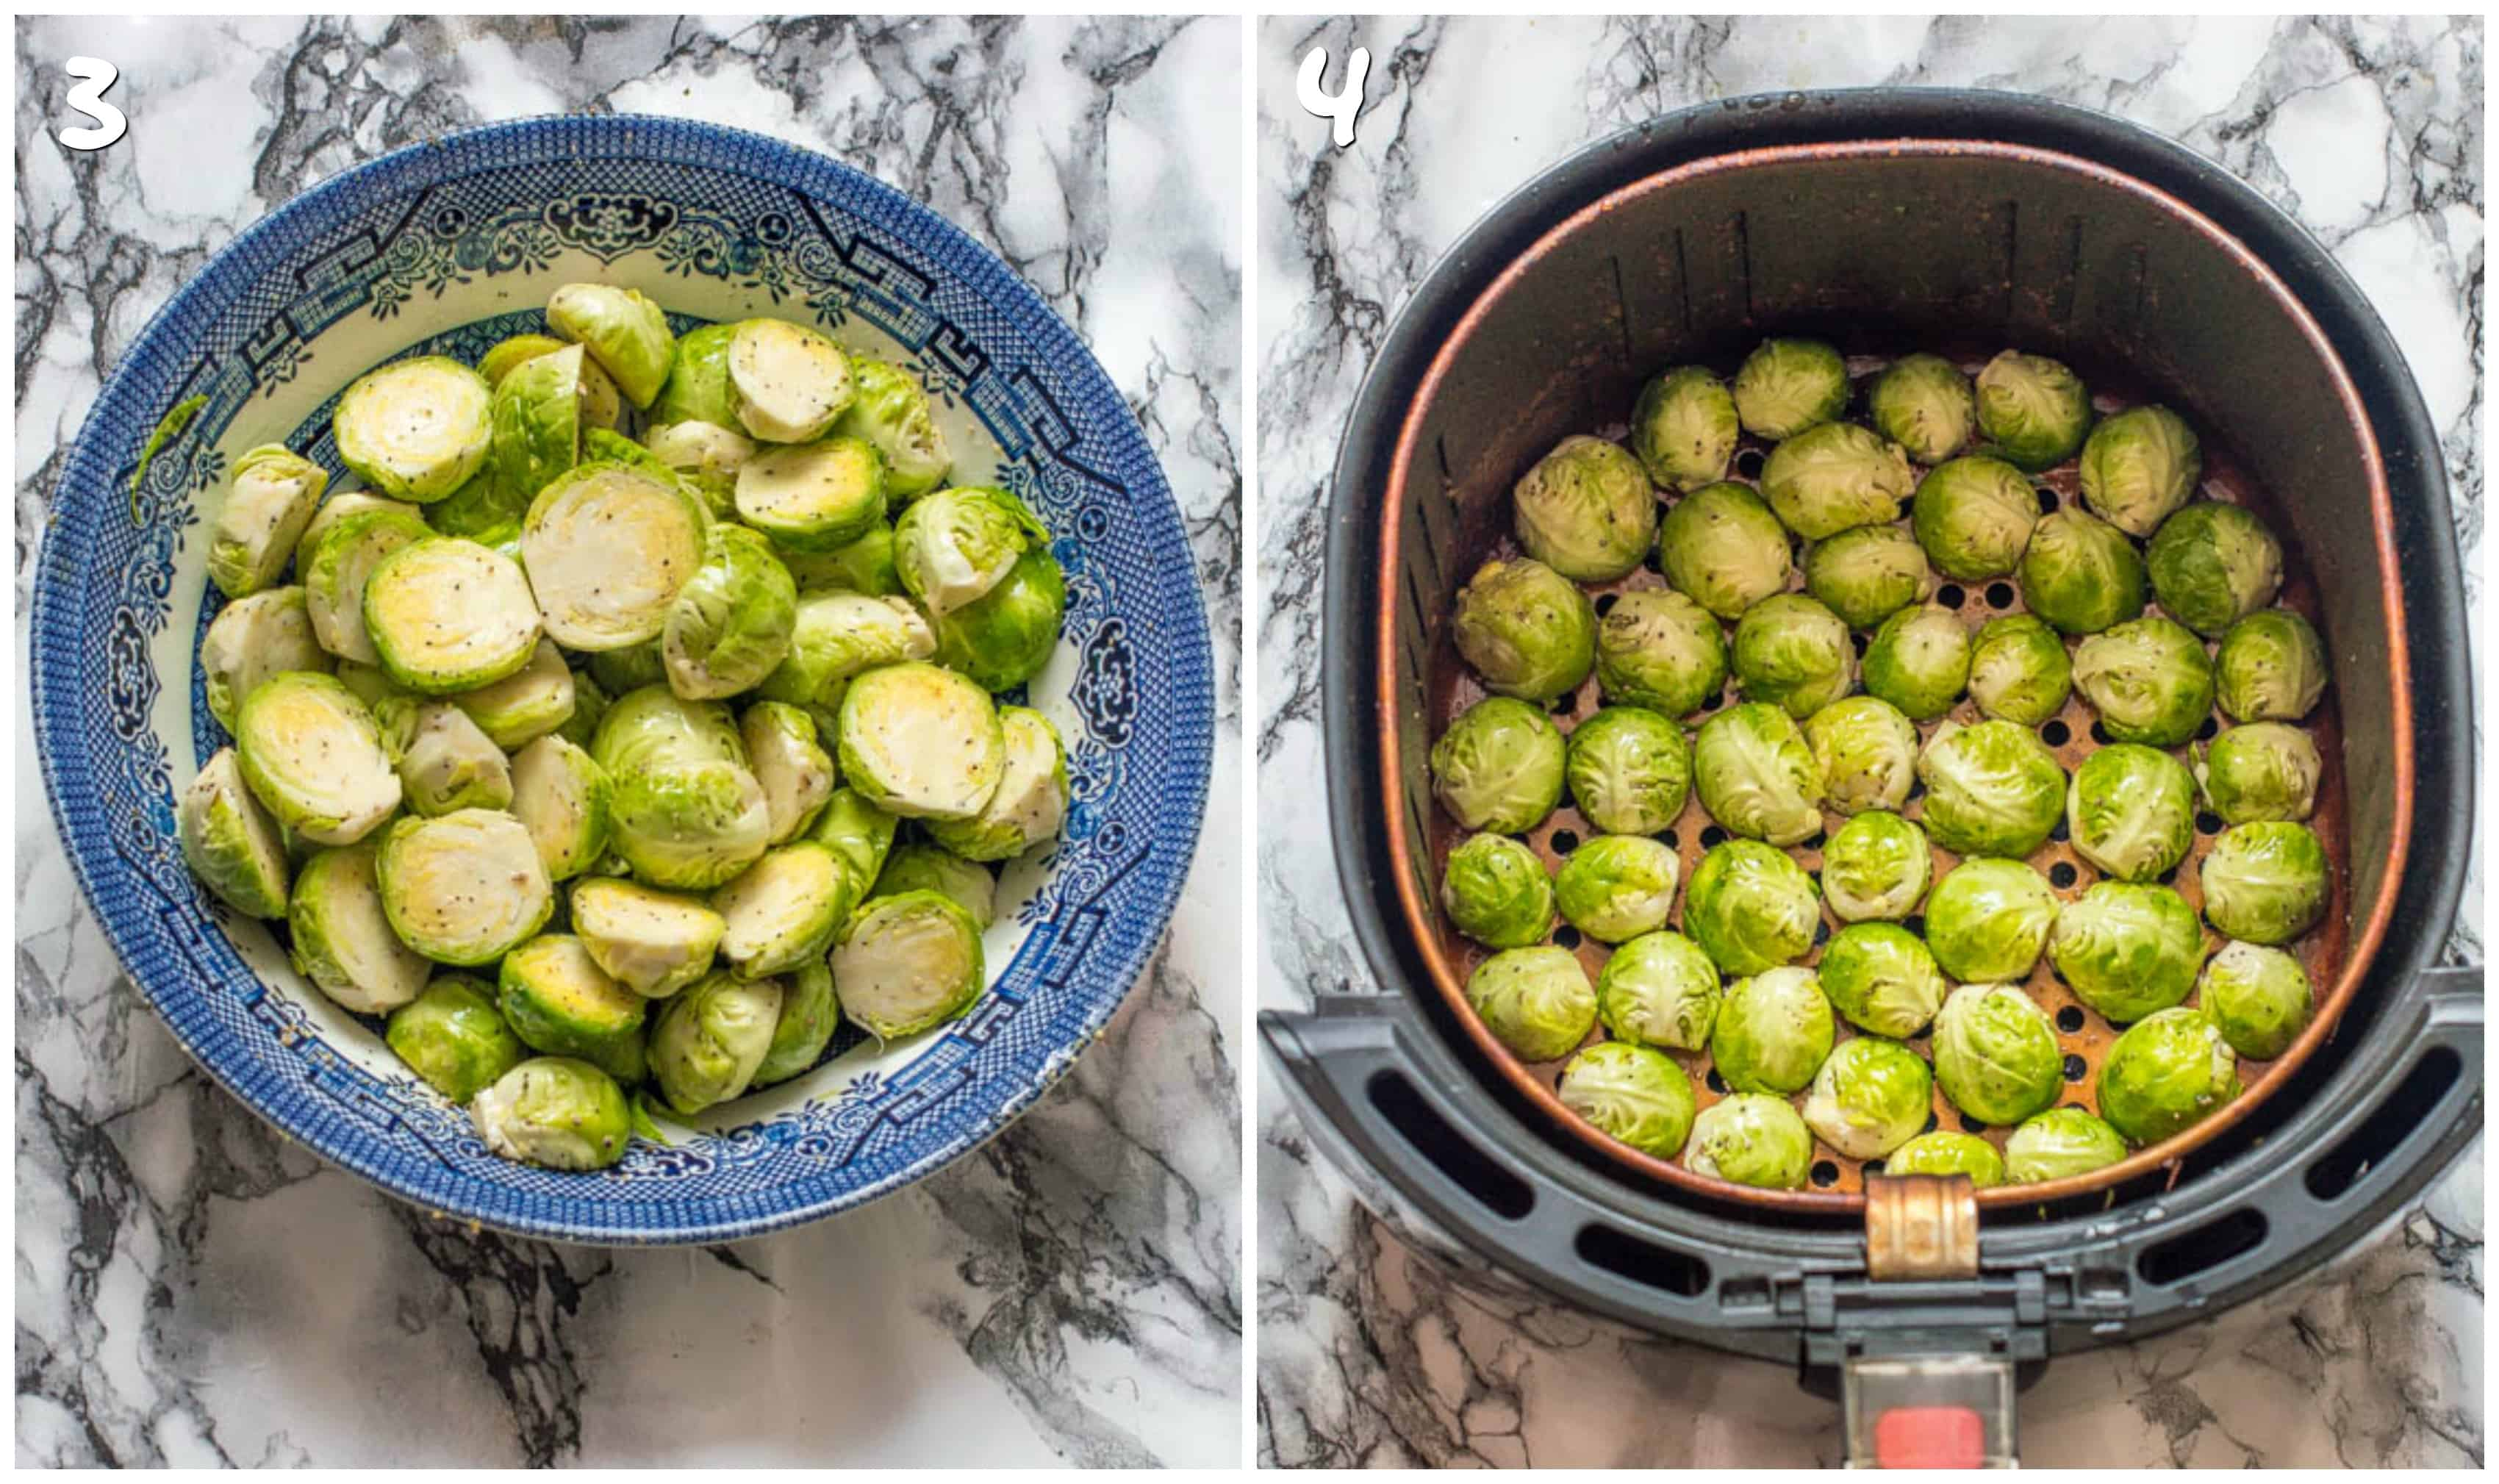 Steps 3-4 seasoning and air frying sprouts